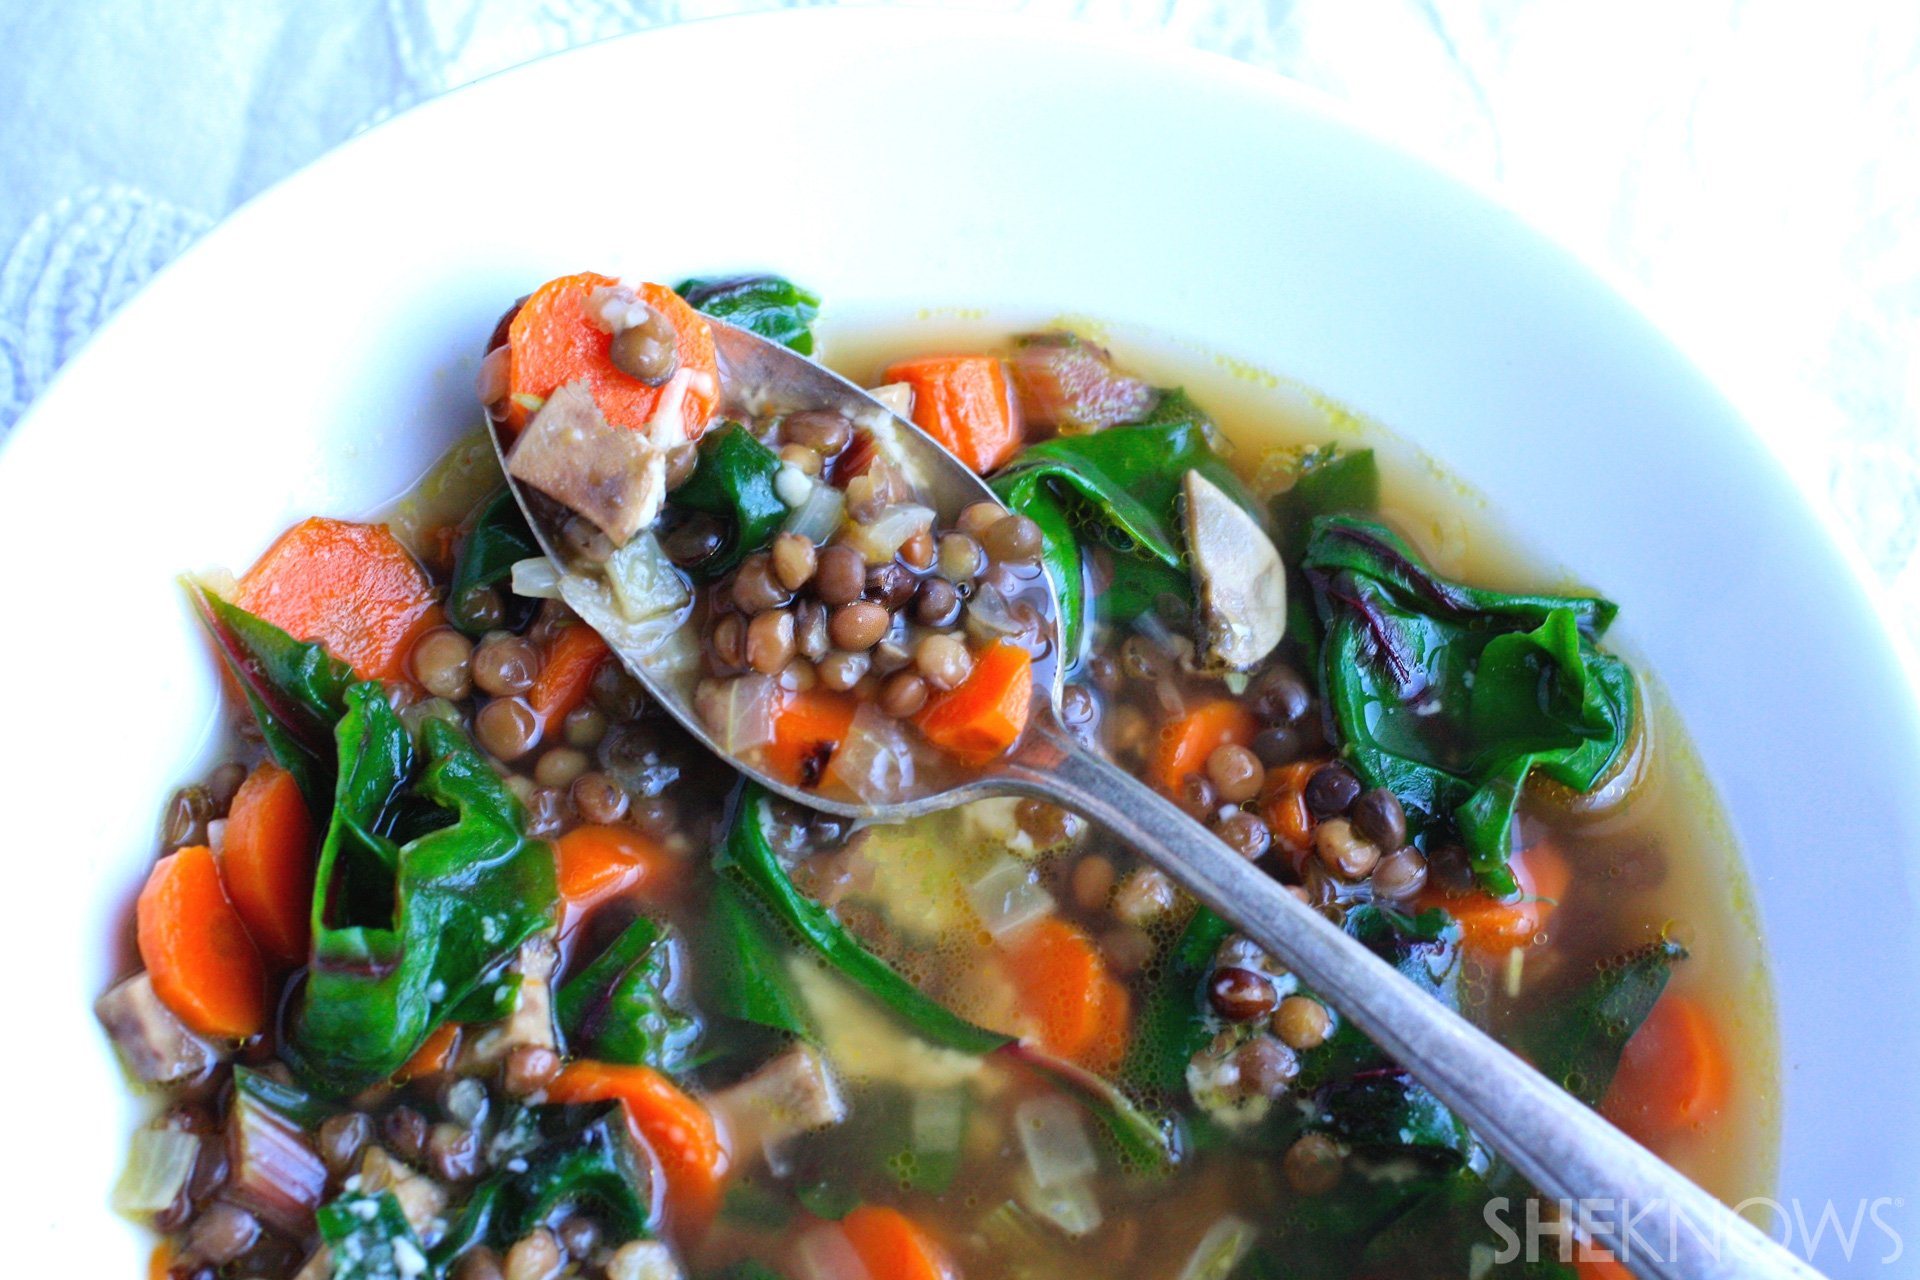 Chunky vegetable soup with roasted carrot, Swiss chard, and lentils